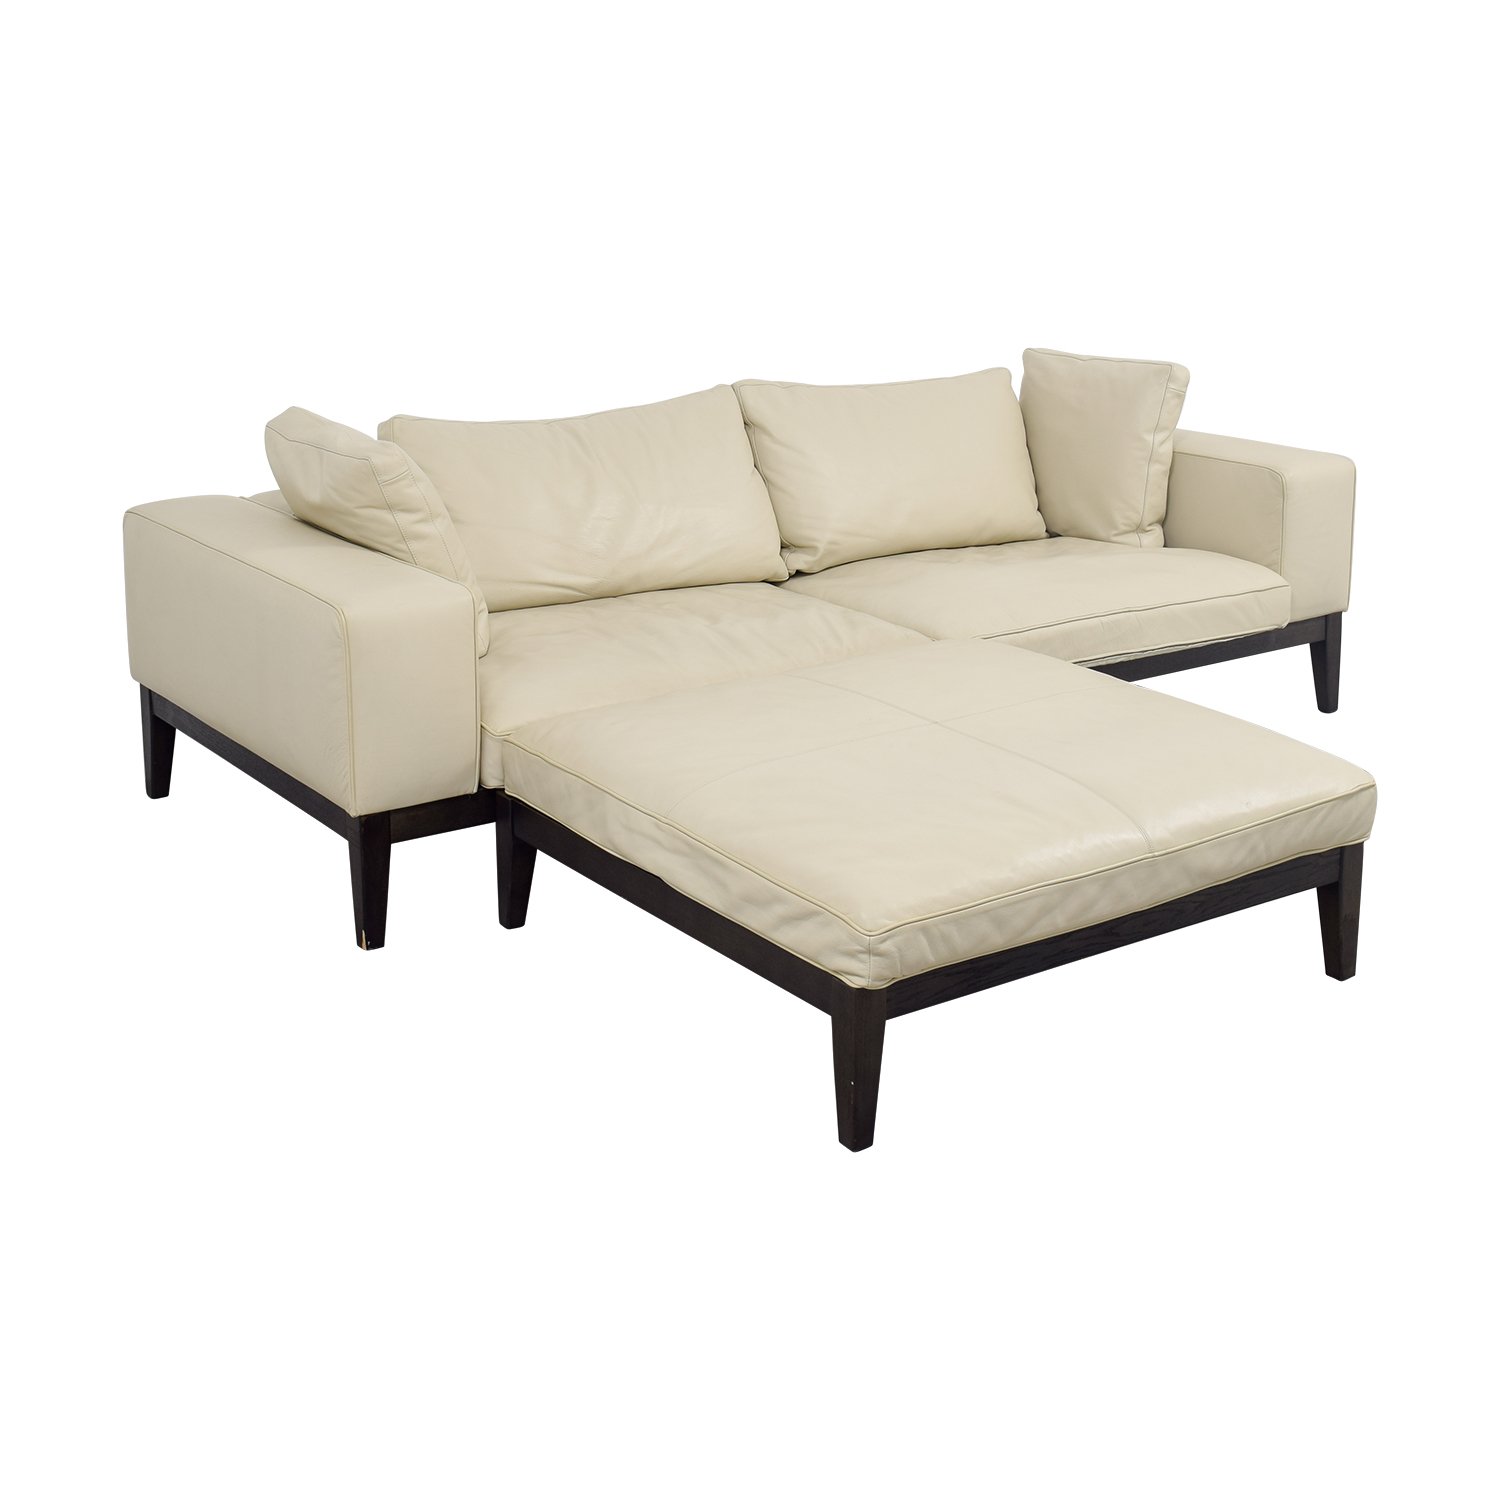 90% OFF - Tree Tree Contemporary Italian Off White Leather Couch with Large  Chaise Ottoman / Sofas